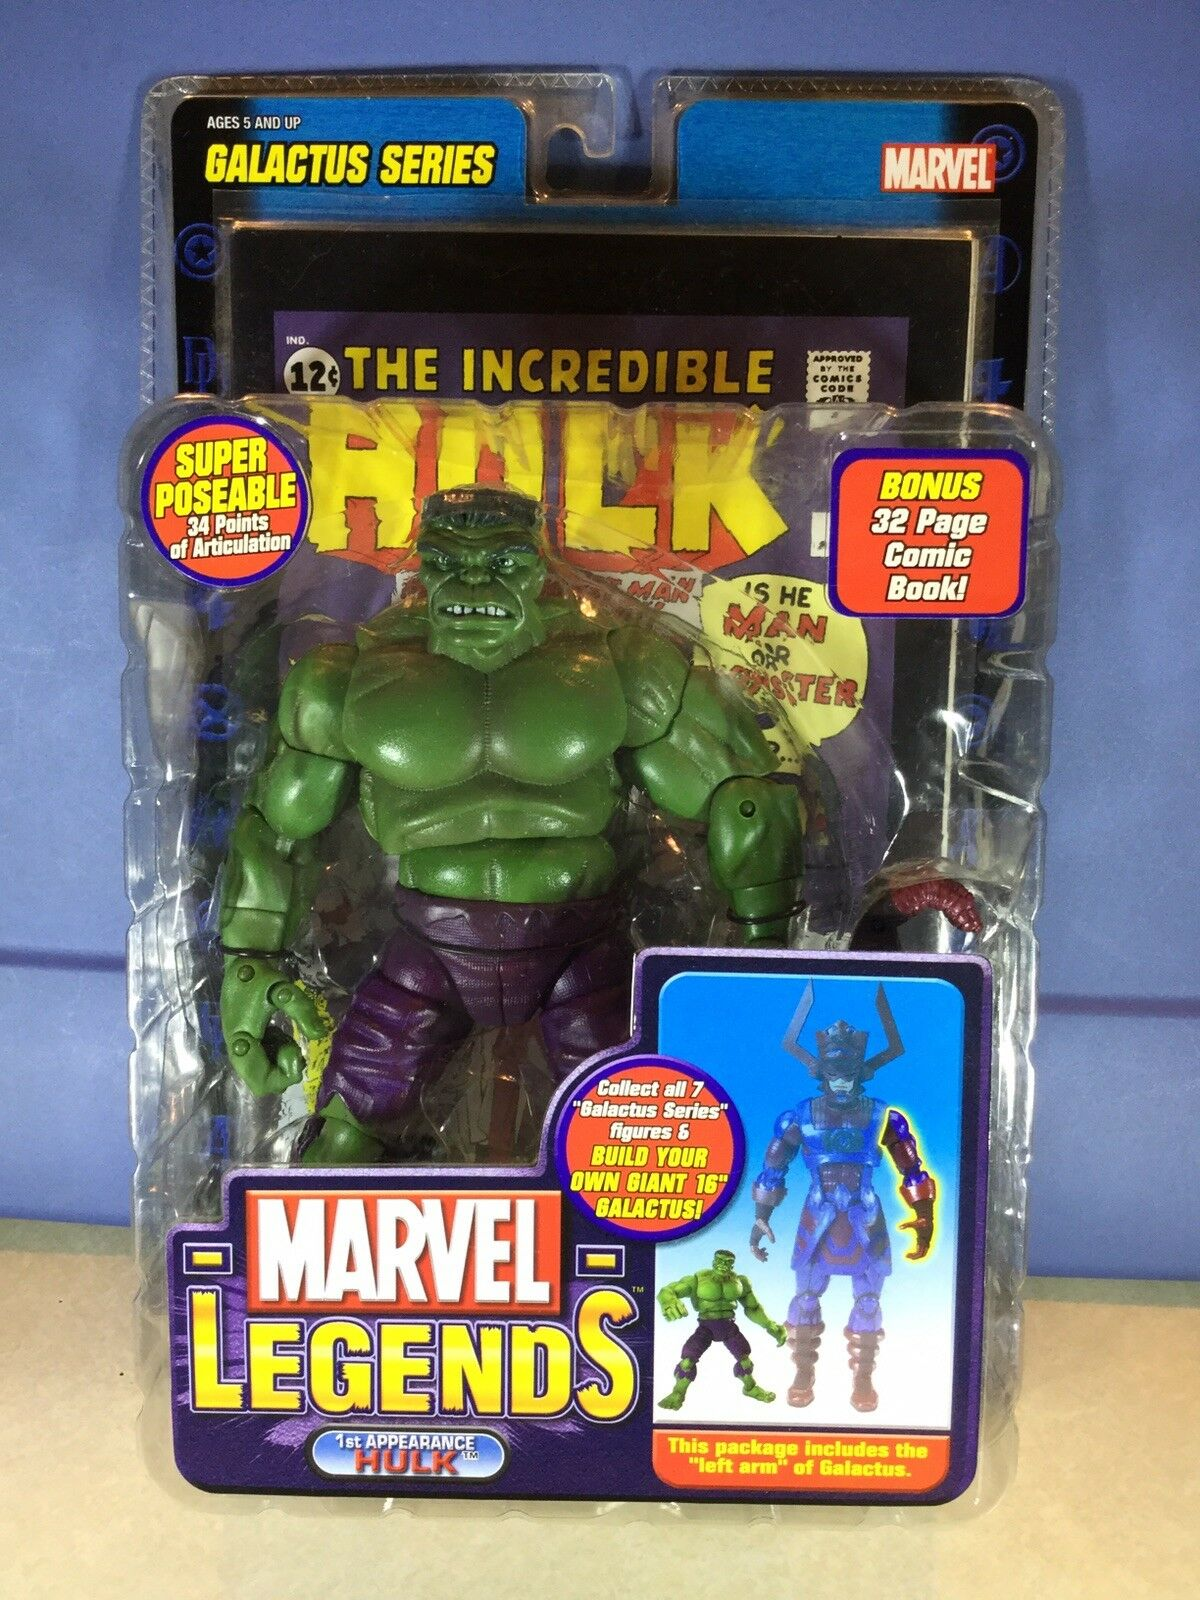 Marvel Legends Toybiz Hulk BAF Galactus